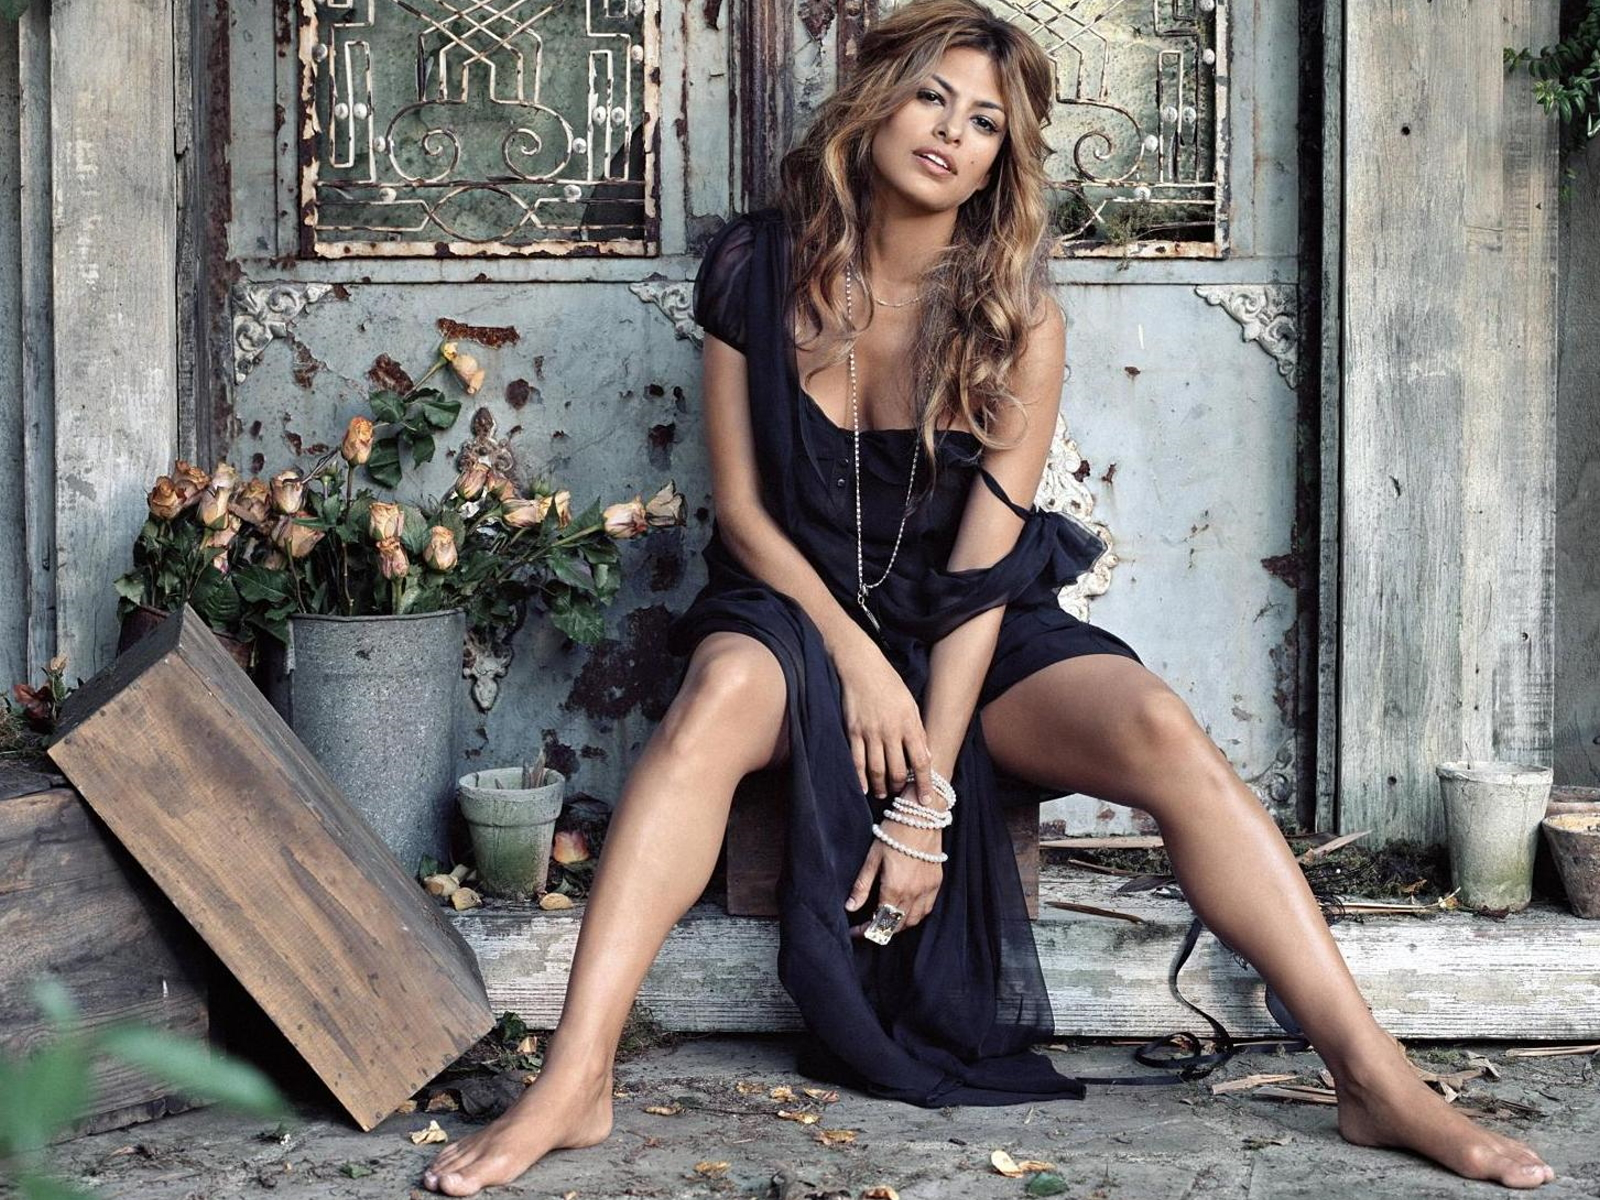 hollywood hot actress eva mendes latest hd wallpapers images 2013 its all about hollywood actress. Black Bedroom Furniture Sets. Home Design Ideas